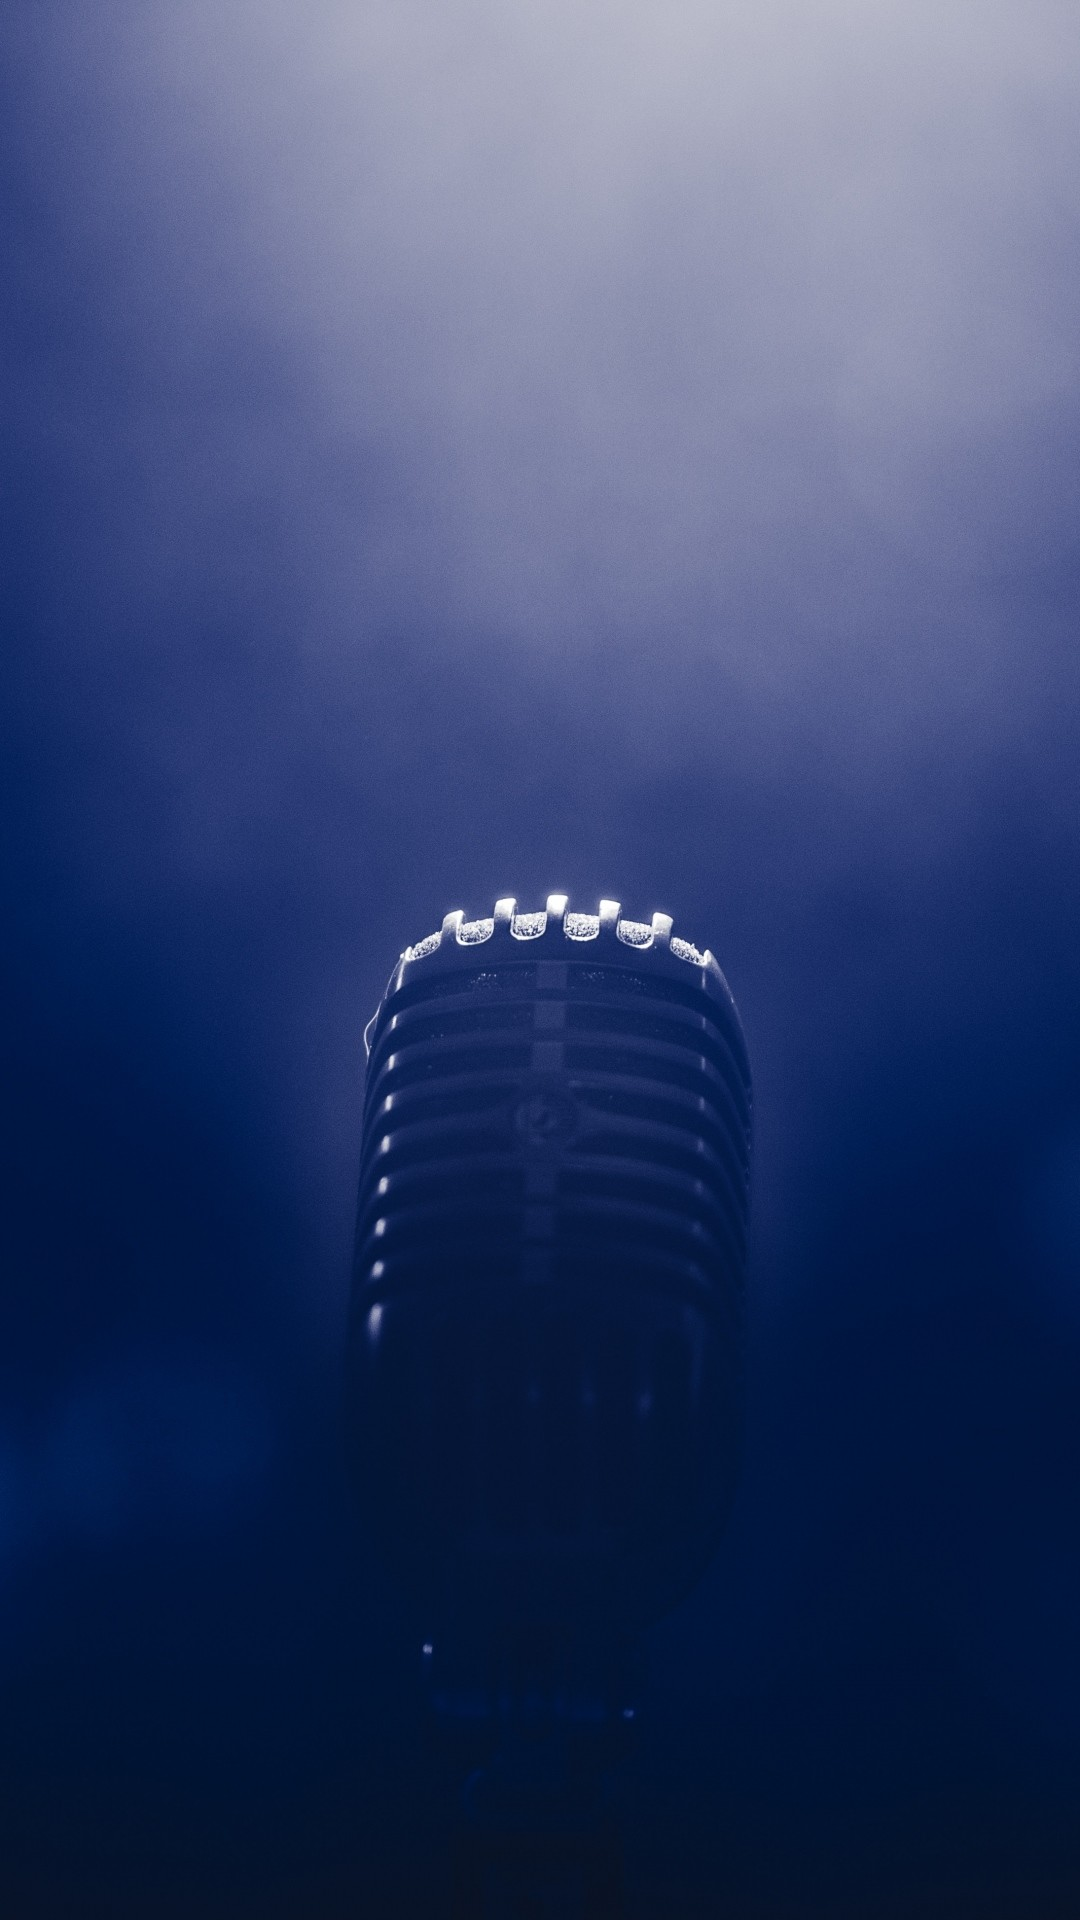 Free Microphone in smoke phone wallpaper by raiven10